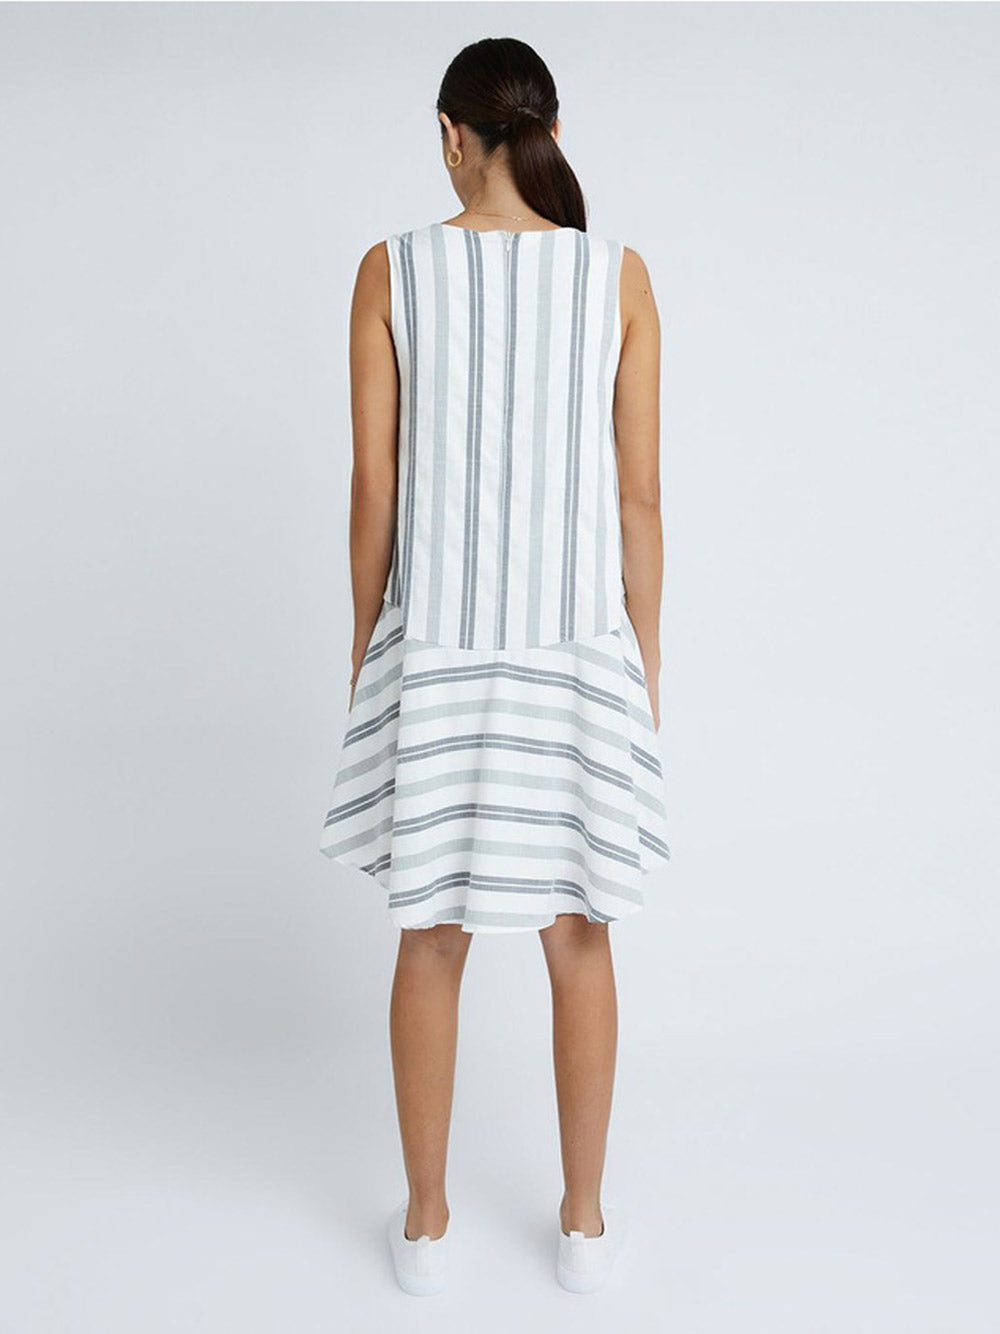 STAPLE THE LABEL Arielle Shift Dress